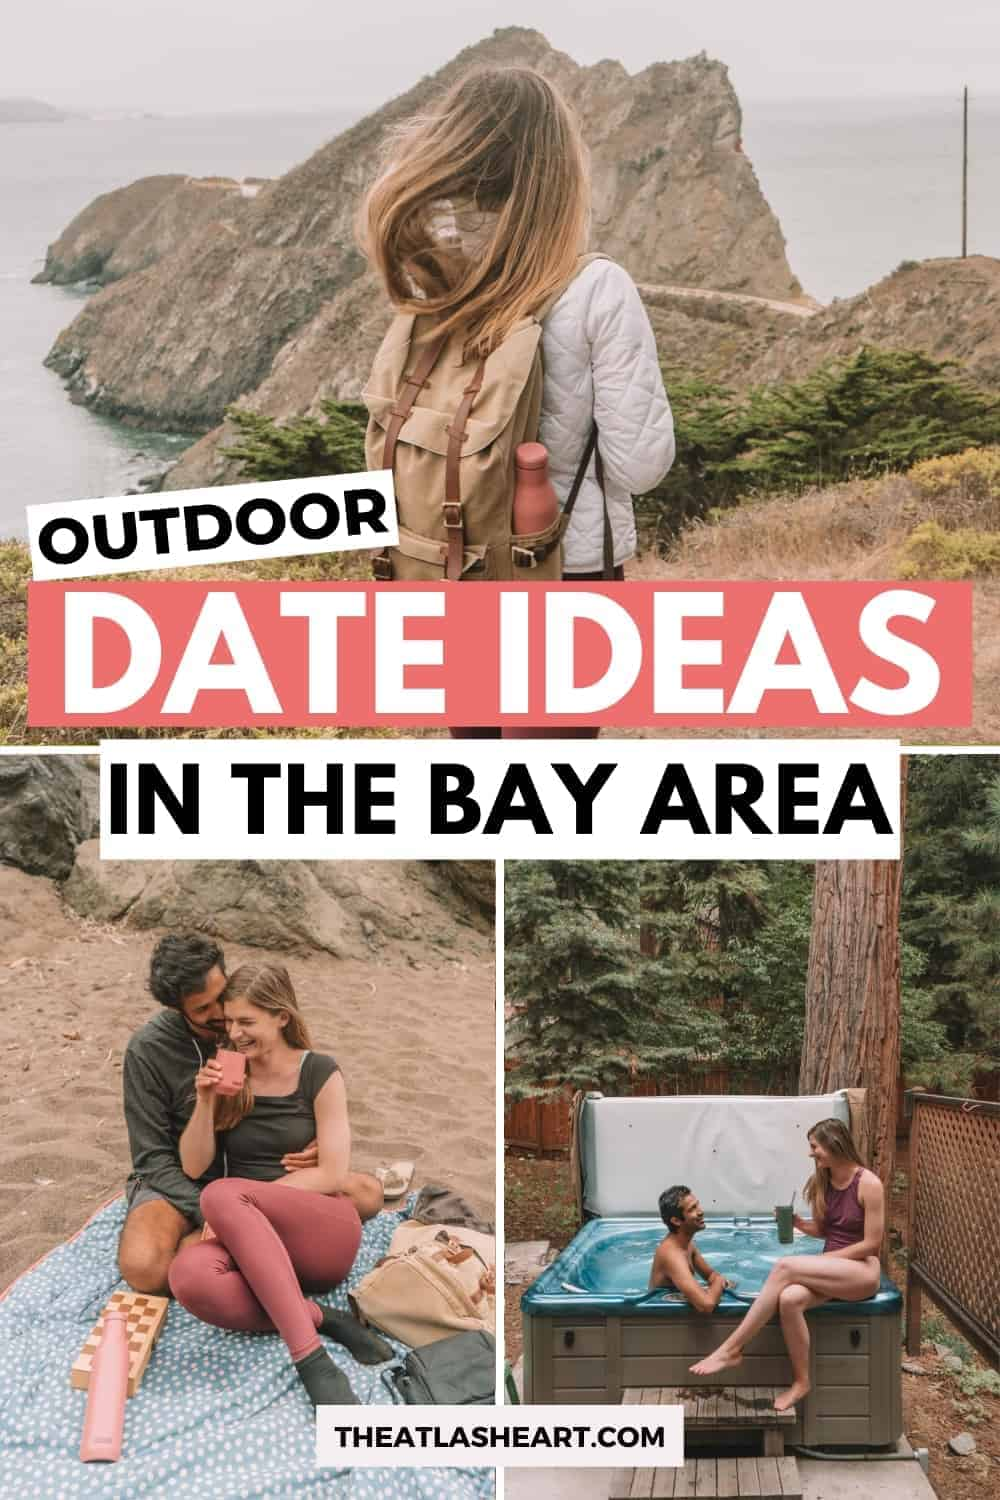 3 Outdoor Date Ideas in the Bay Area (To Enjoy During Quarantine)